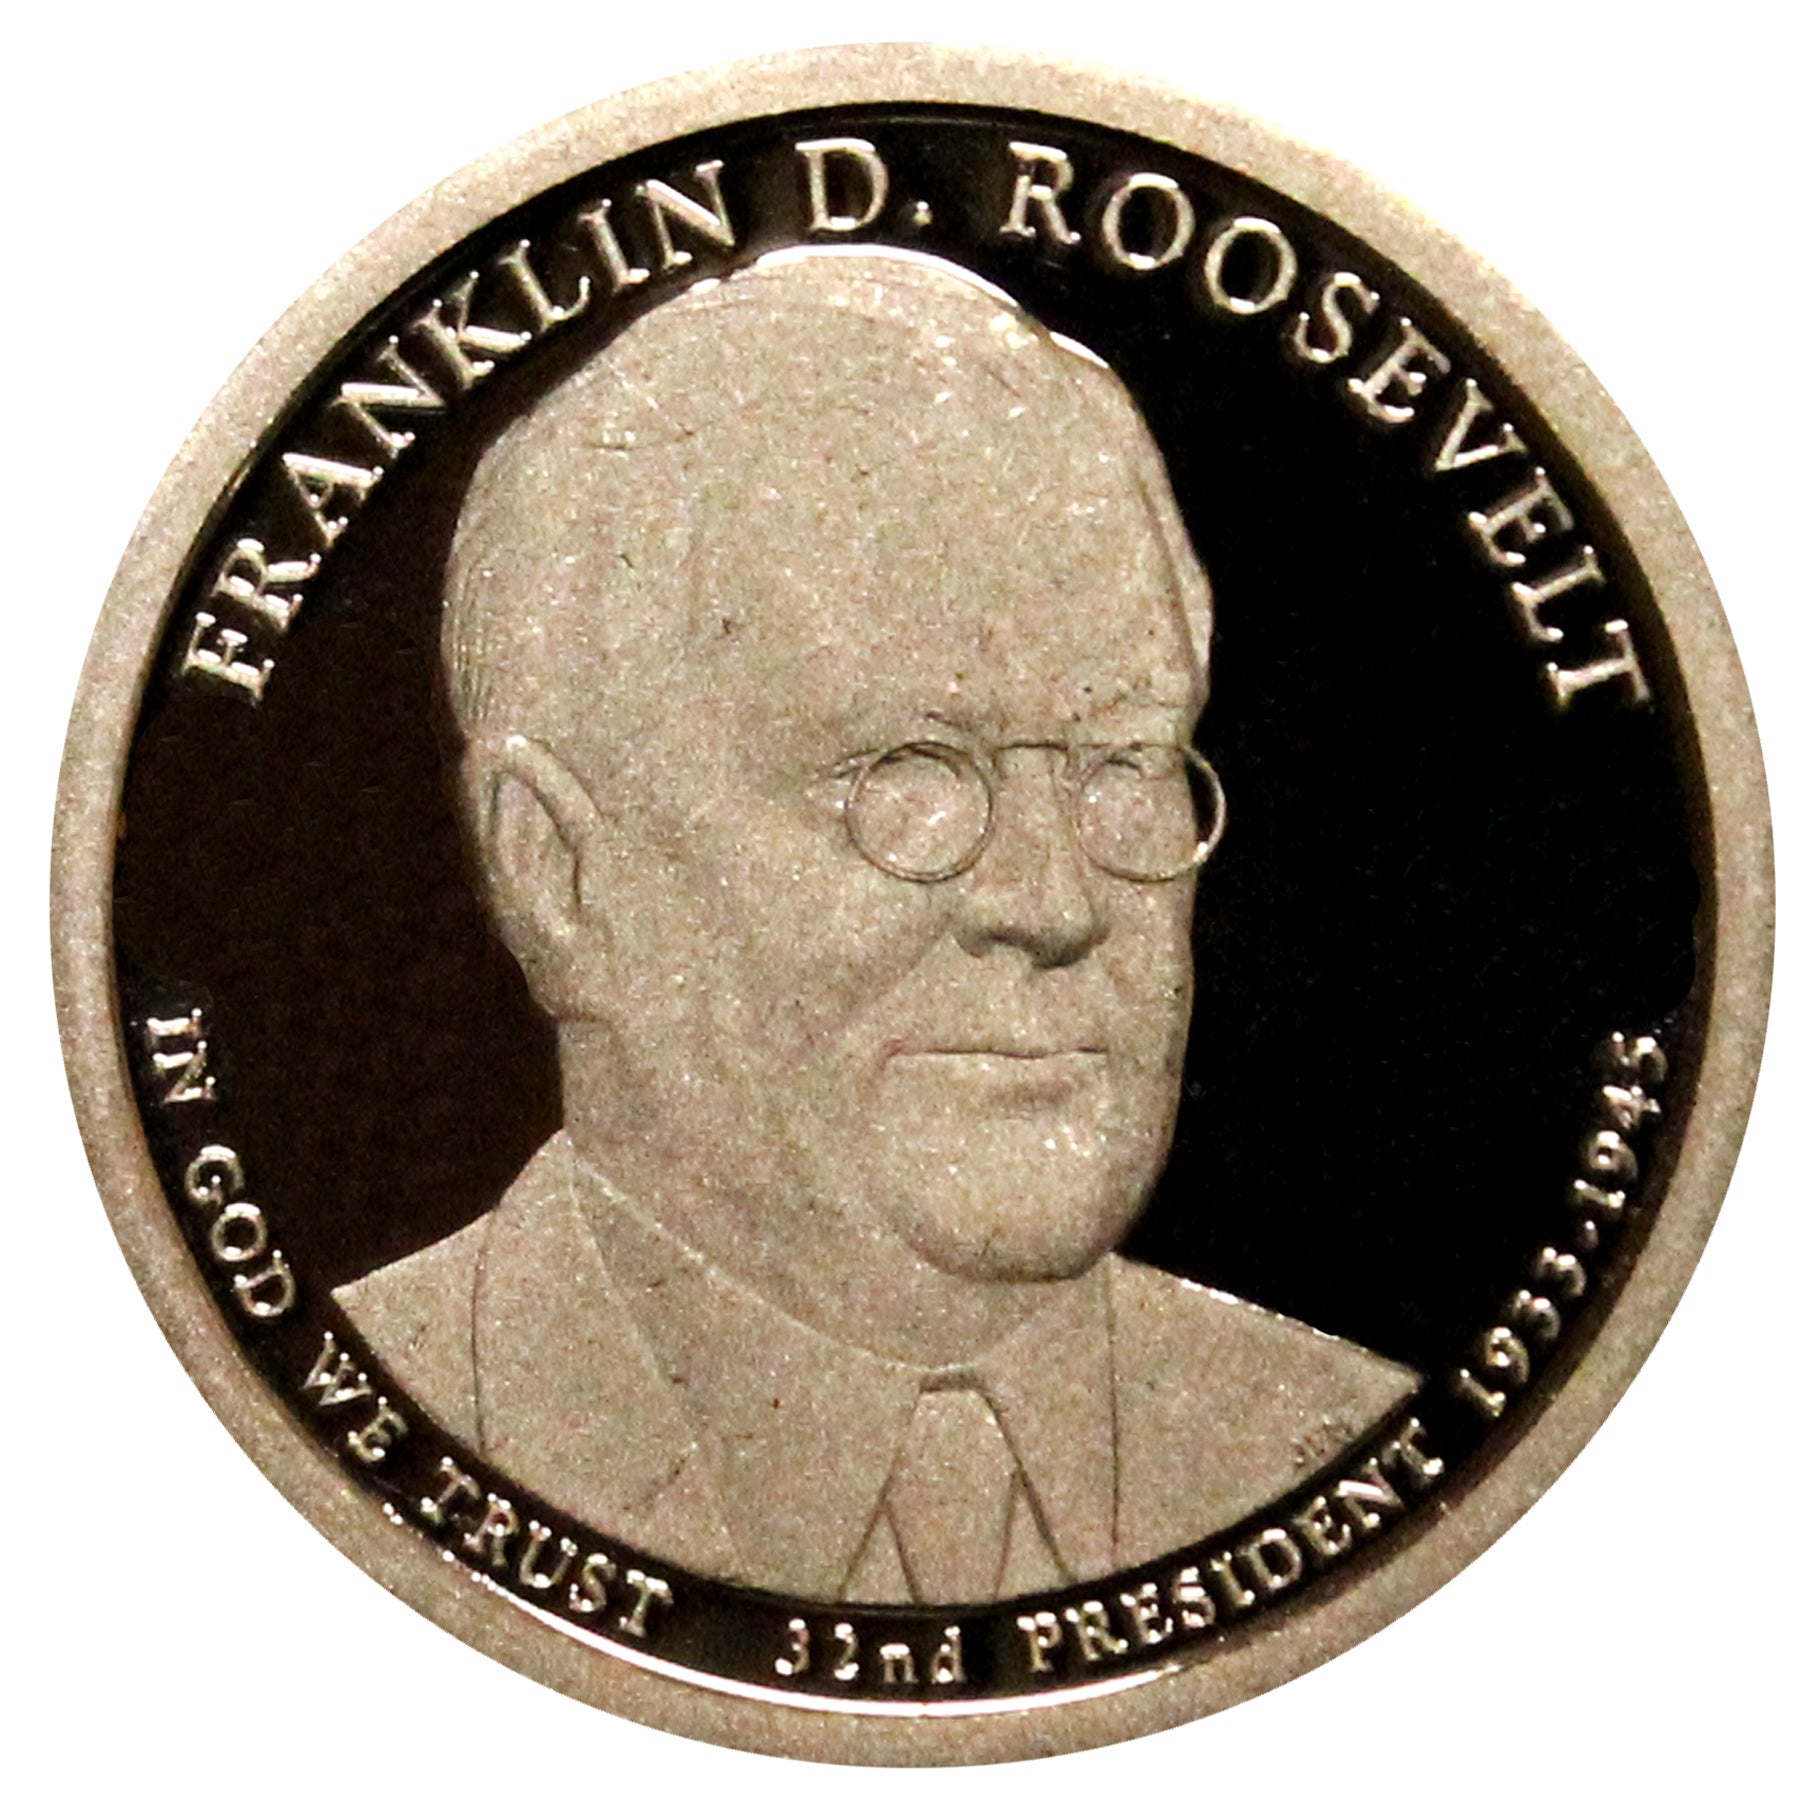 2014-S Franklin Roosevelt Presidential Proof Dollar Gem Deep Cameo US Coin